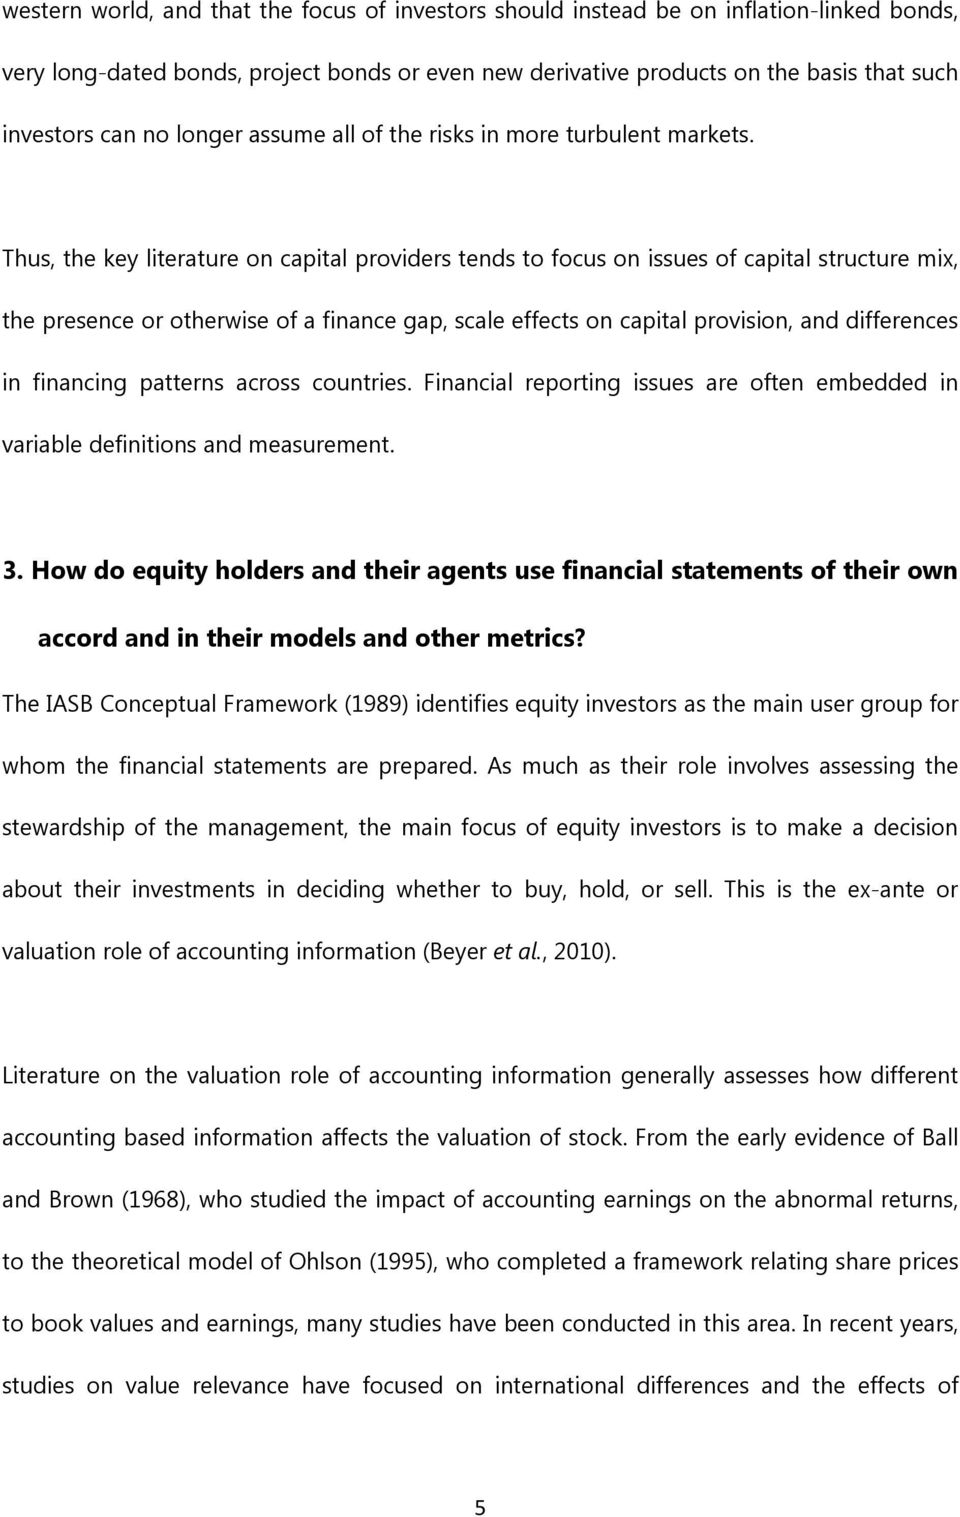 Thus, the key literature on capital providers tends to focus on issues of capital structure mix, the presence or otherwise of a finance gap, scale effects on capital provision, and differences in